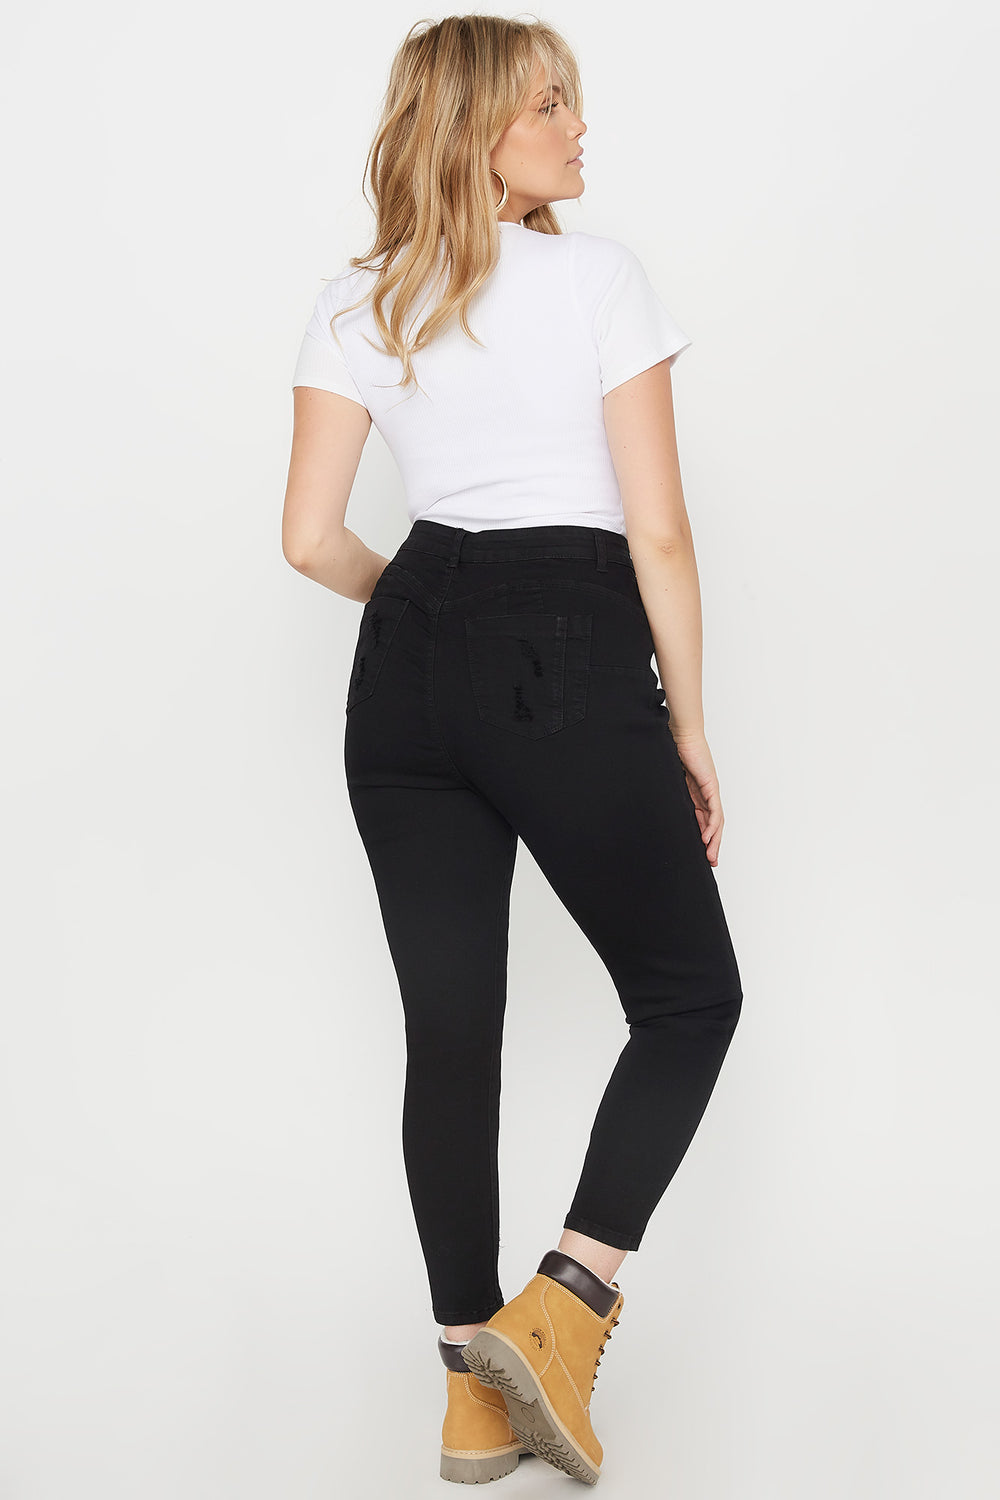 Plus Size Butt, I Love You High-Rise Push-Up Distressed Skinny Jean Black